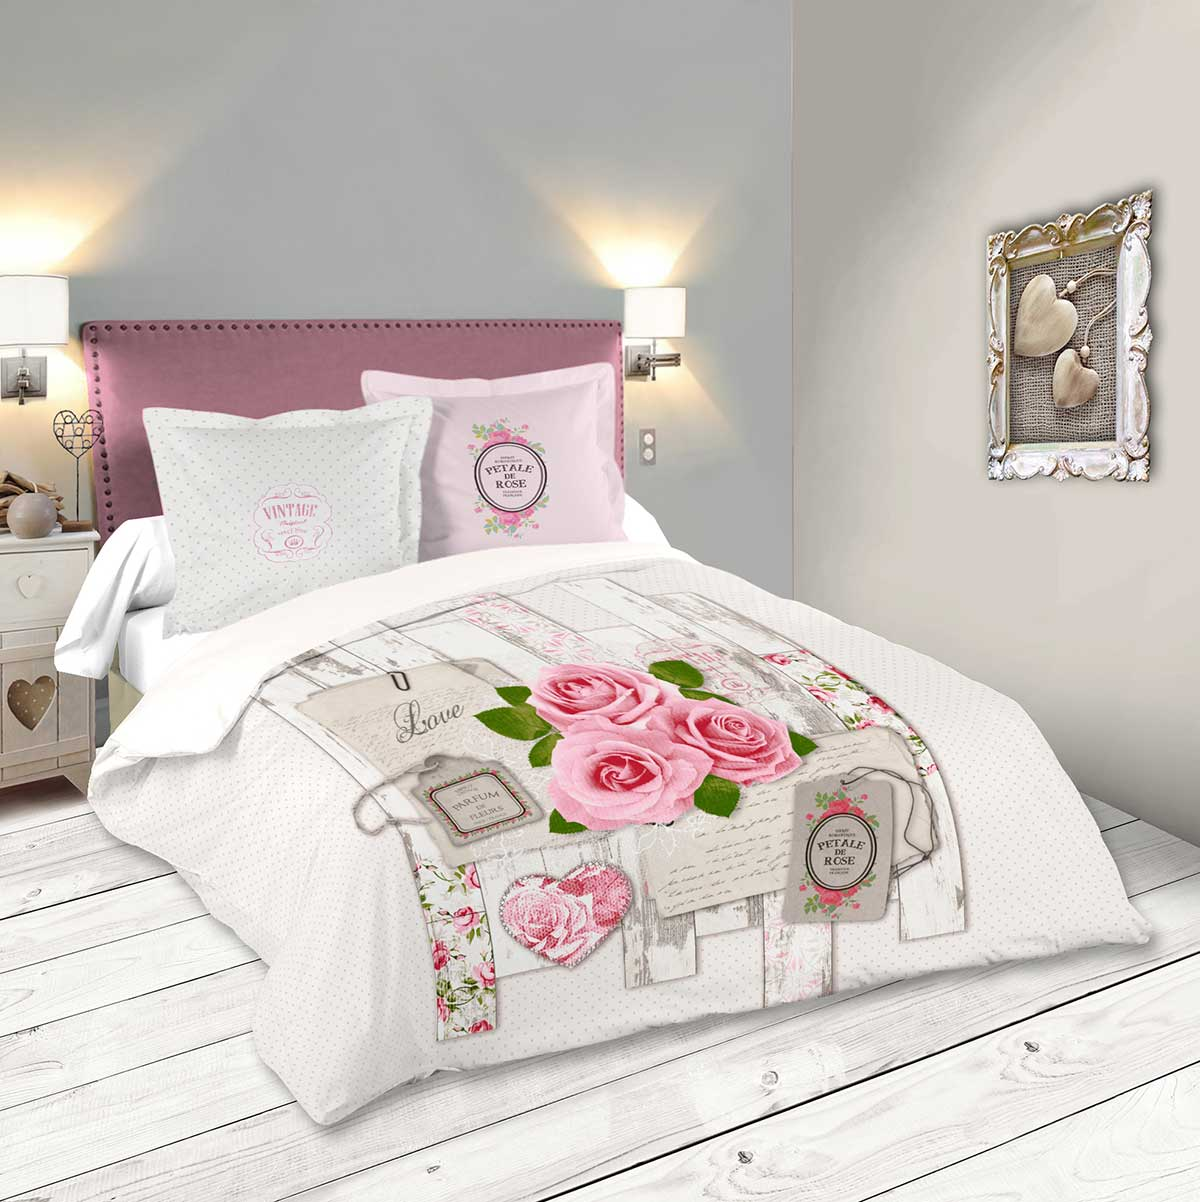 parure de lit romance de roses rose homemaison vente en ligne parures de lit. Black Bedroom Furniture Sets. Home Design Ideas